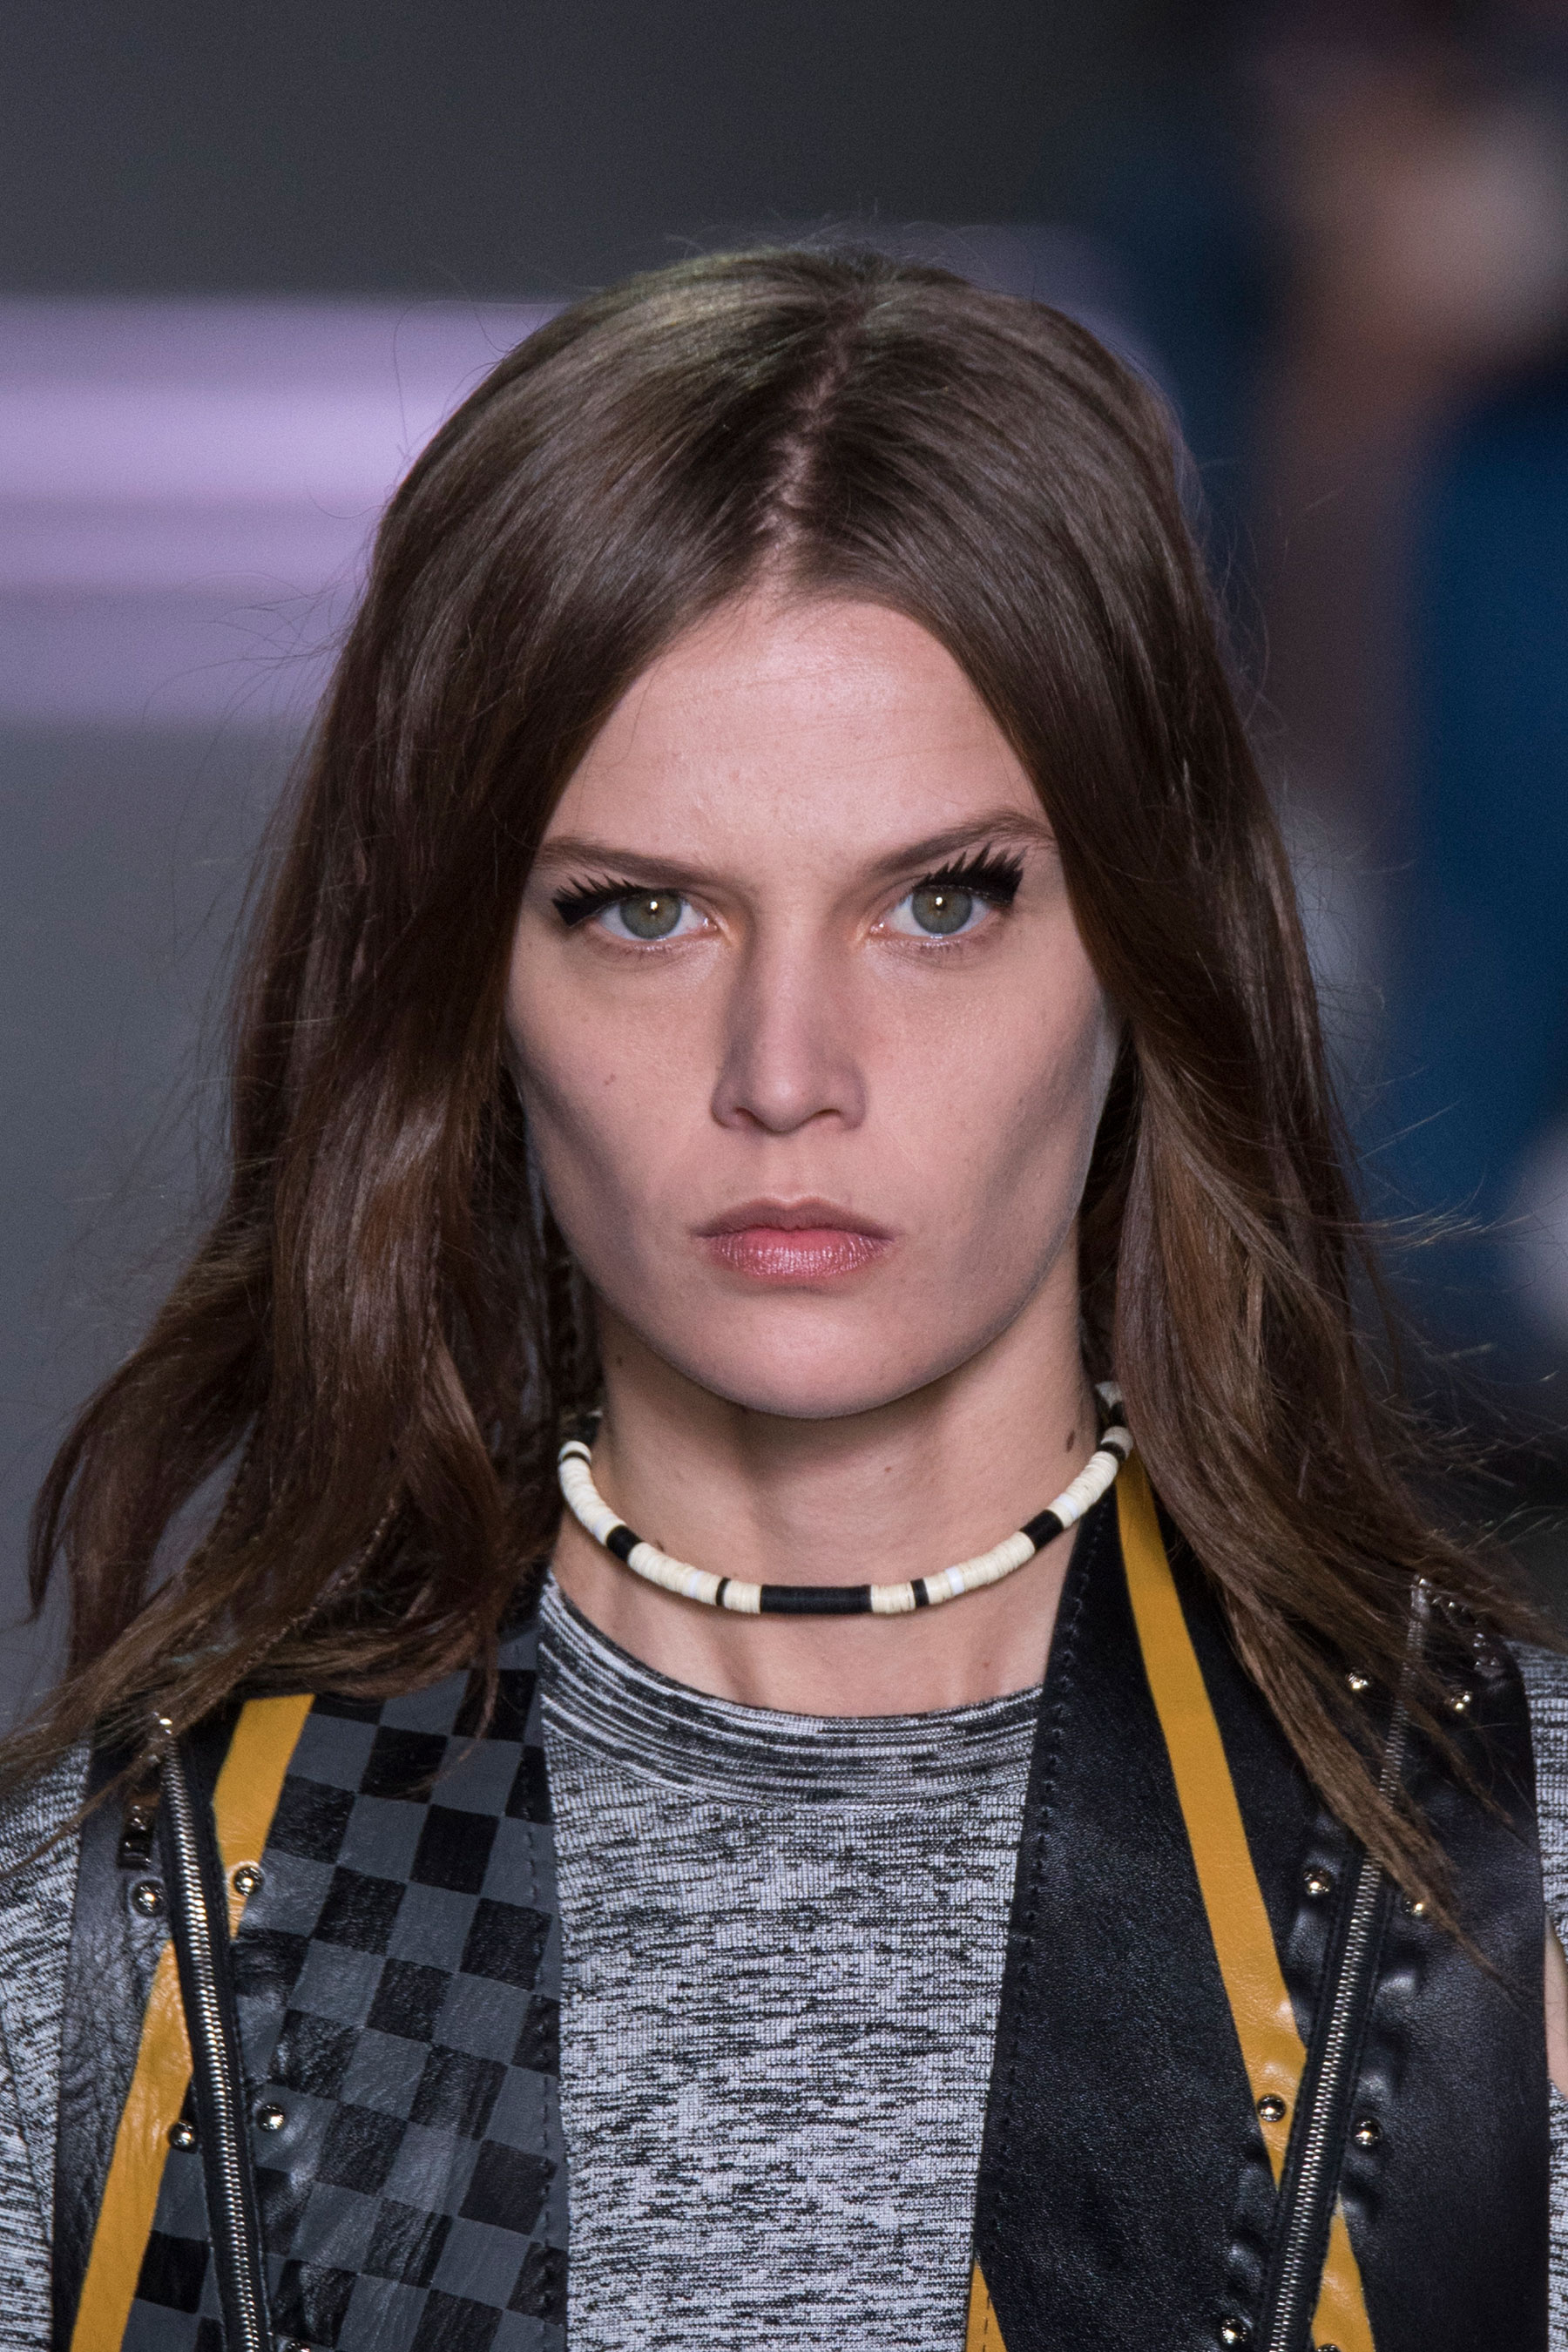 Louis-Vuitton-spring-2016-runway-beauty-fashion-show-the-impression-28